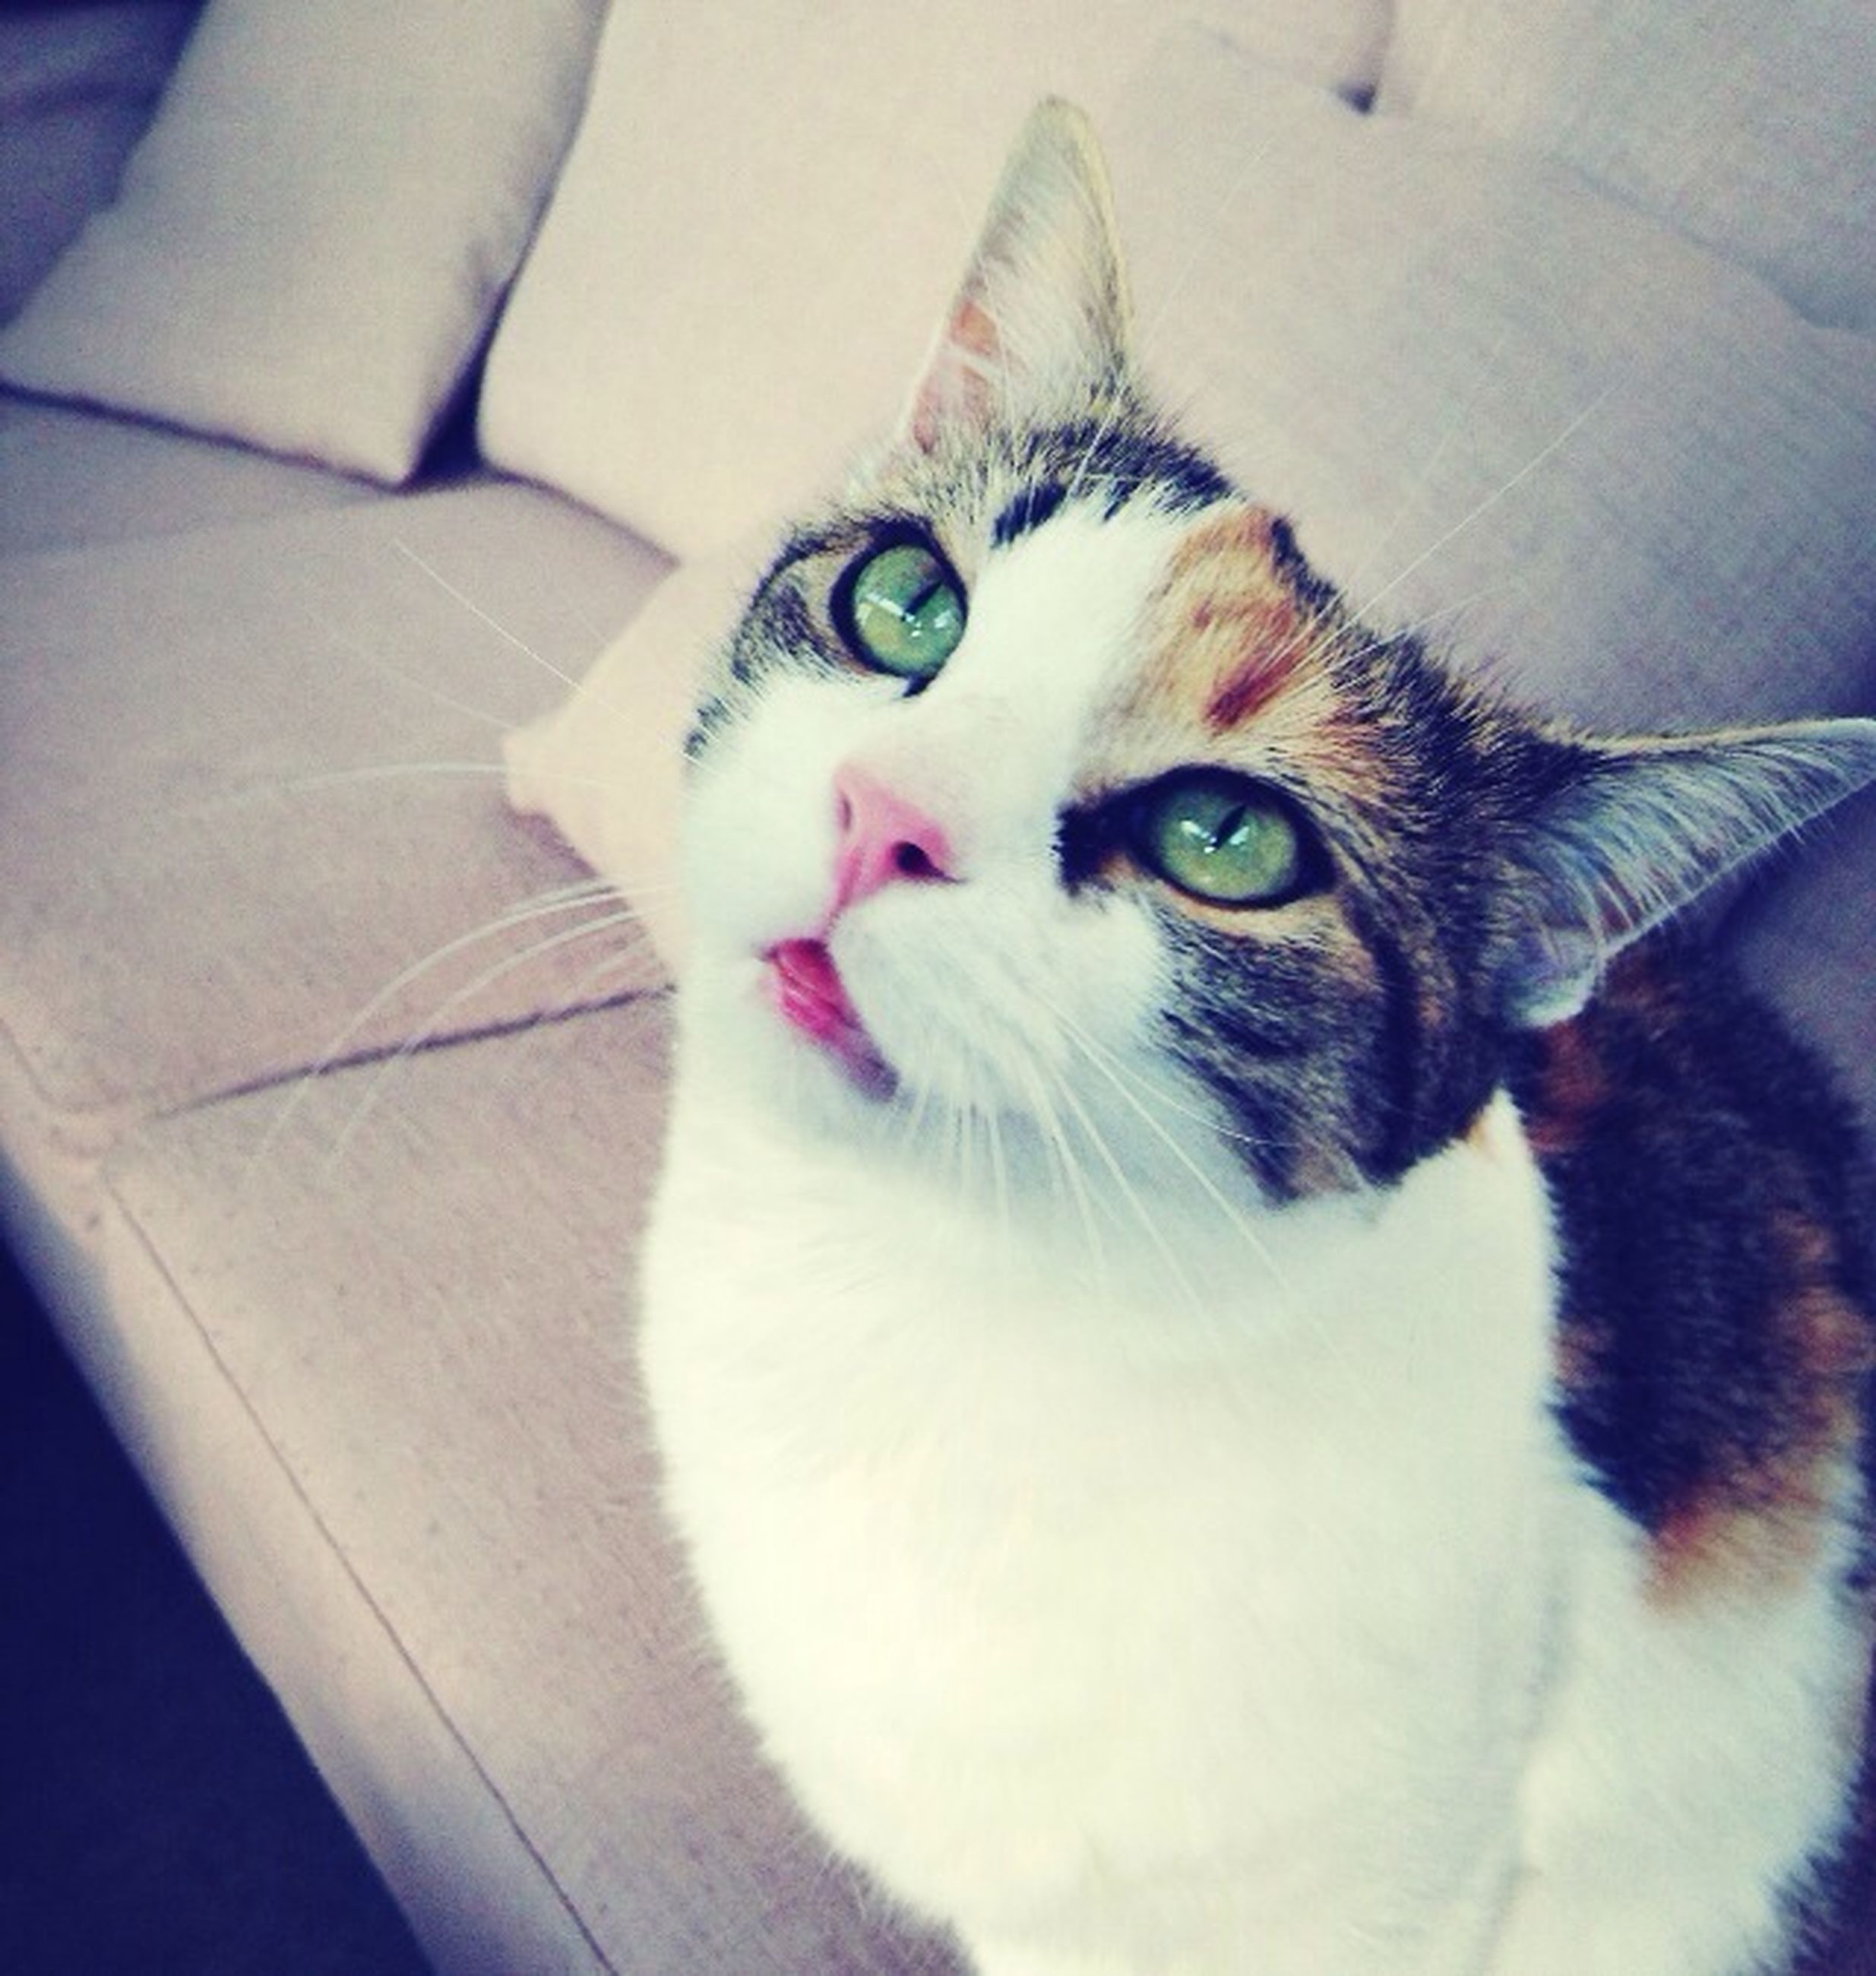 pets, domestic animals, domestic cat, one animal, cat, indoors, animal themes, feline, portrait, mammal, looking at camera, whisker, close-up, animal head, white color, relaxation, alertness, home interior, animal eye, high angle view